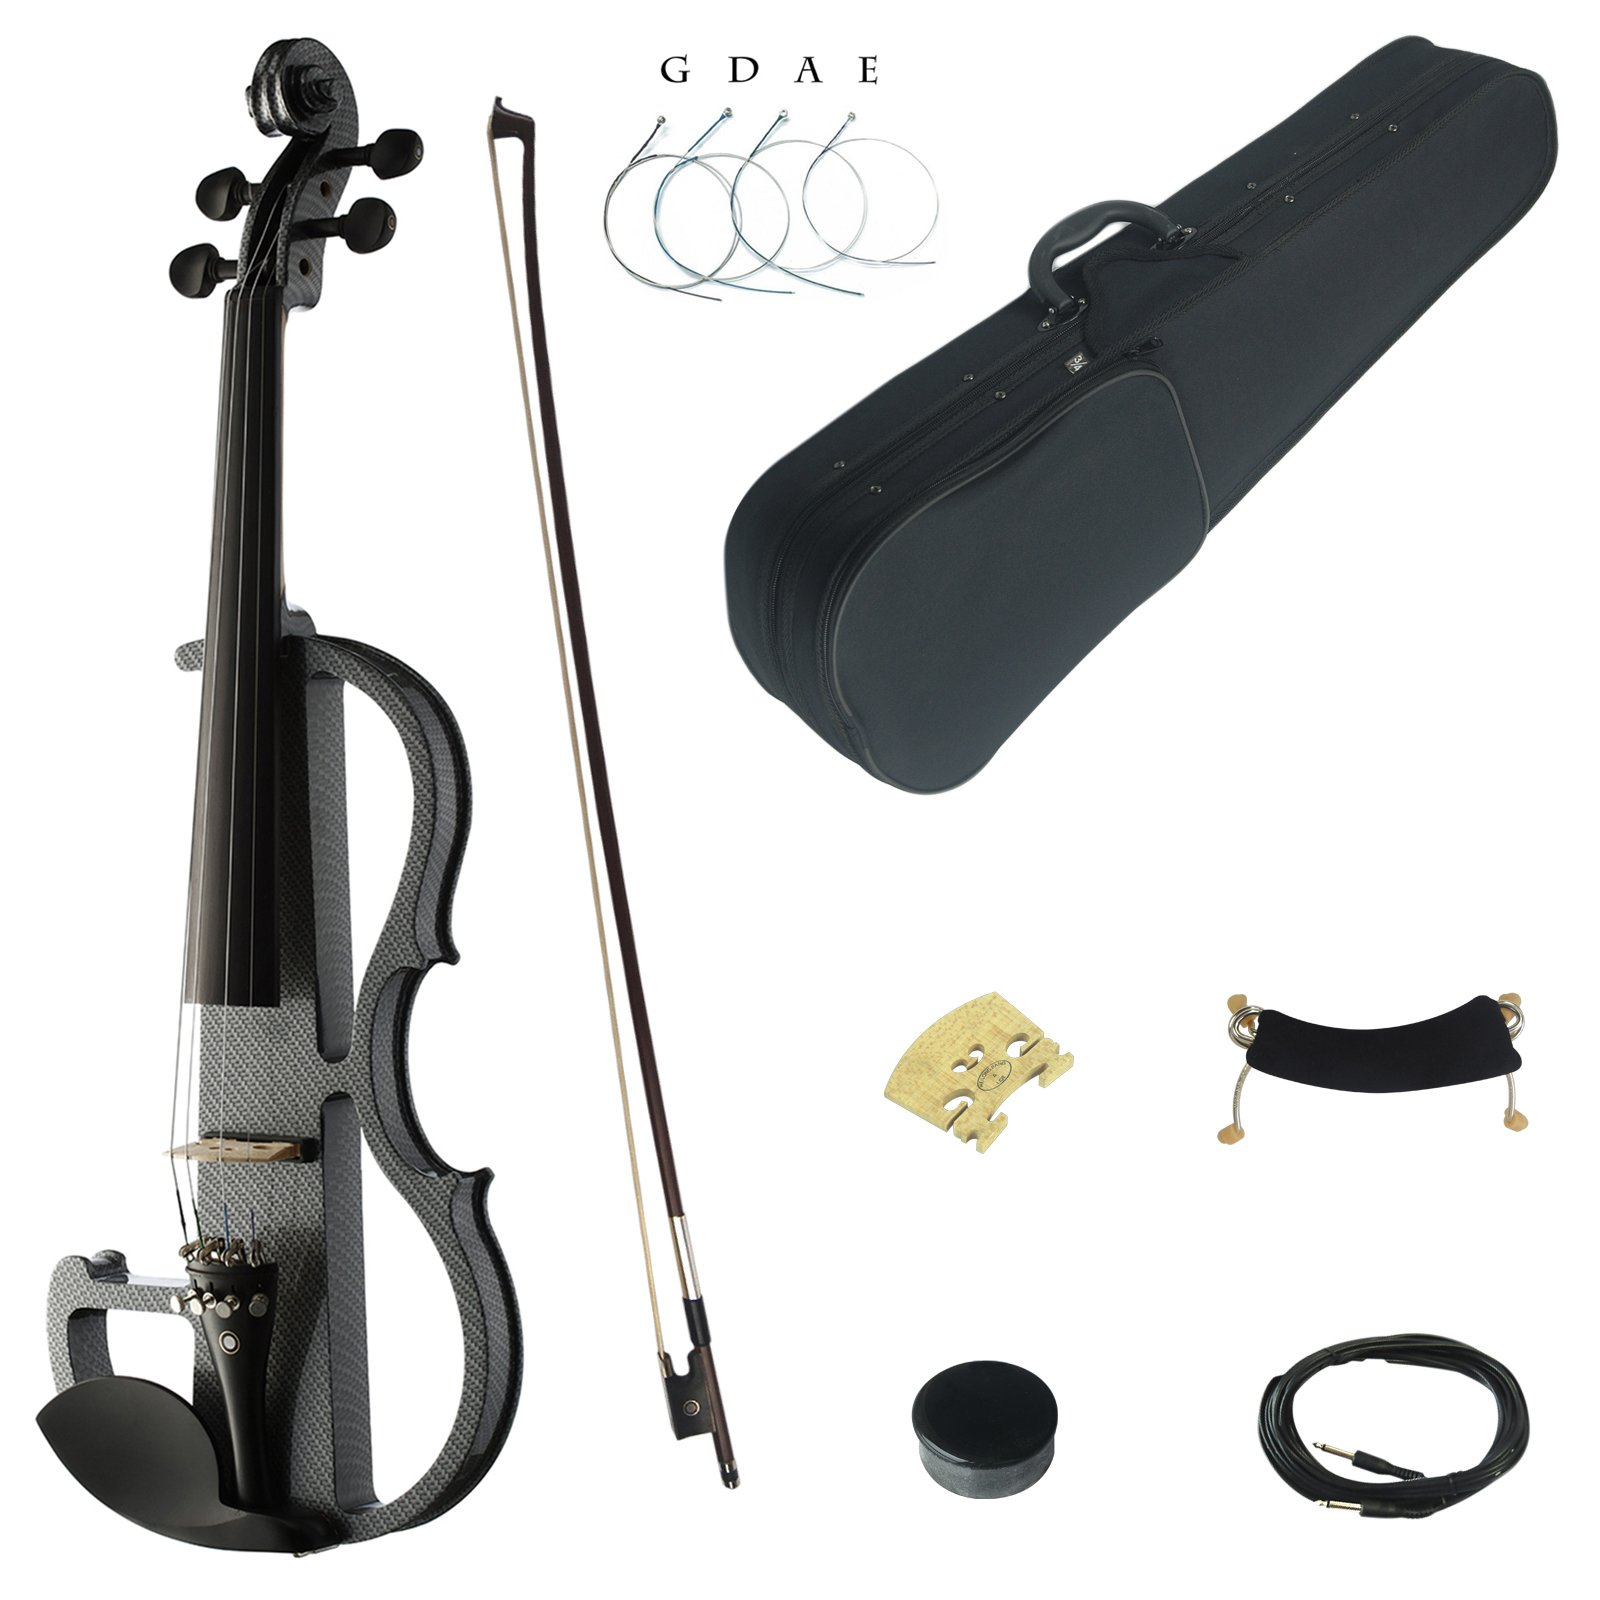 Kinglos 4/4 Black Grid Colored Solid Wood Advanced Electric / Silent Violin Kit with Ebony Fittings Full Size (DSG1311)